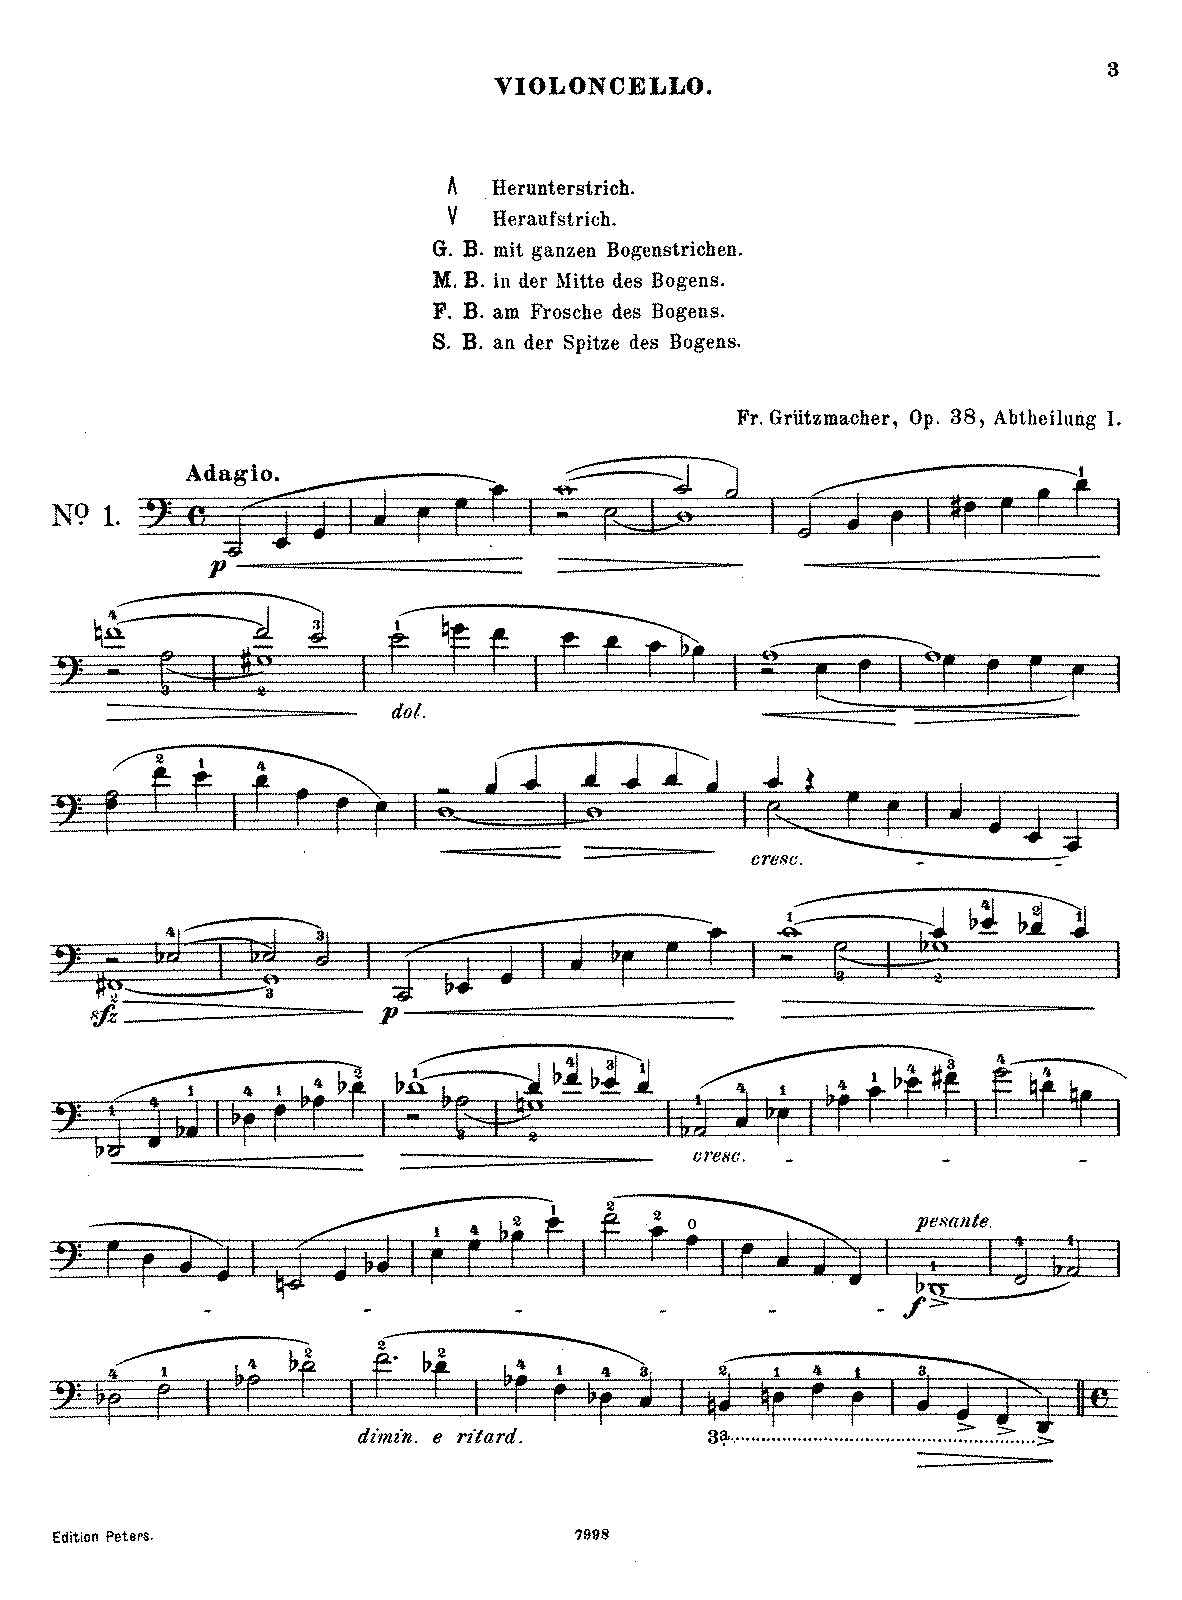 PMLP53335-Grutzmacher - 24 Etudes for Cello Op38 part1 cello.pdf